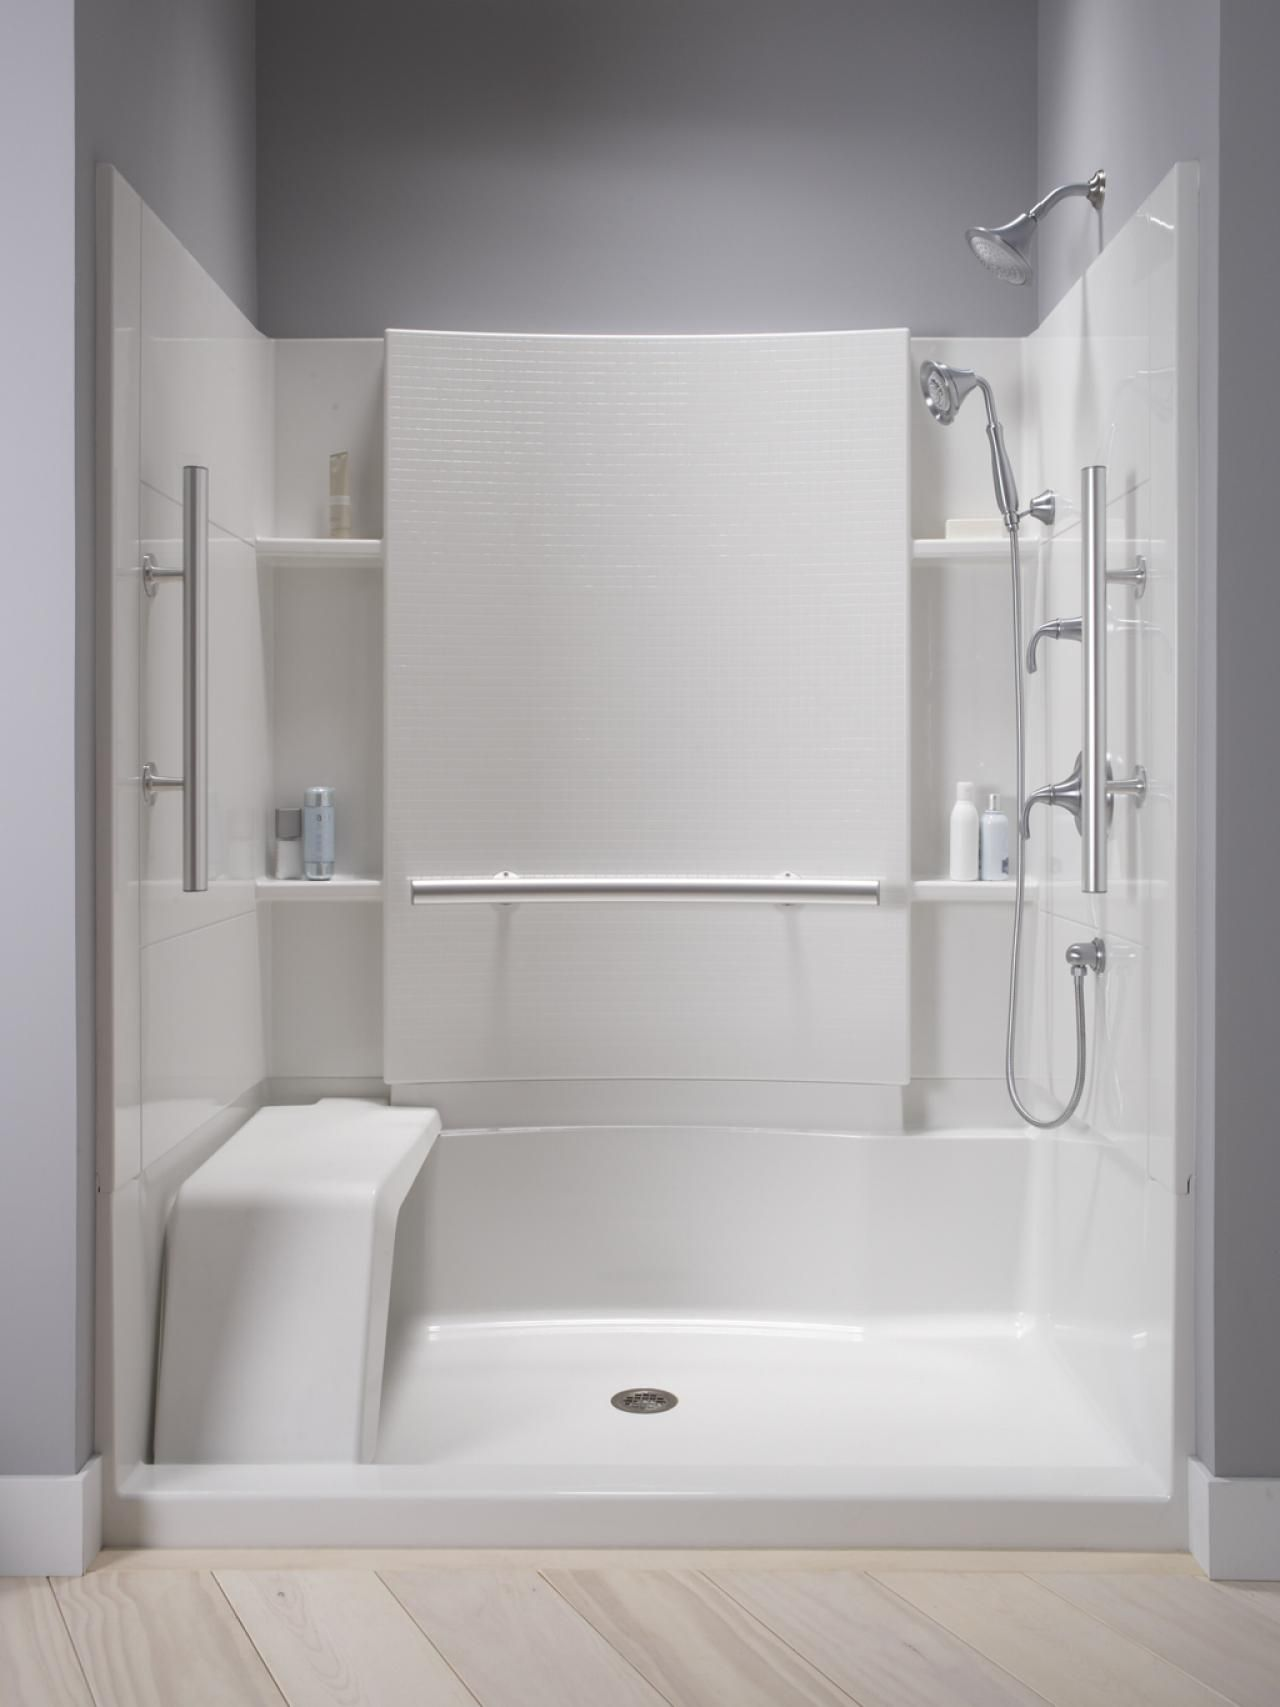 Design of bathrooms with showers